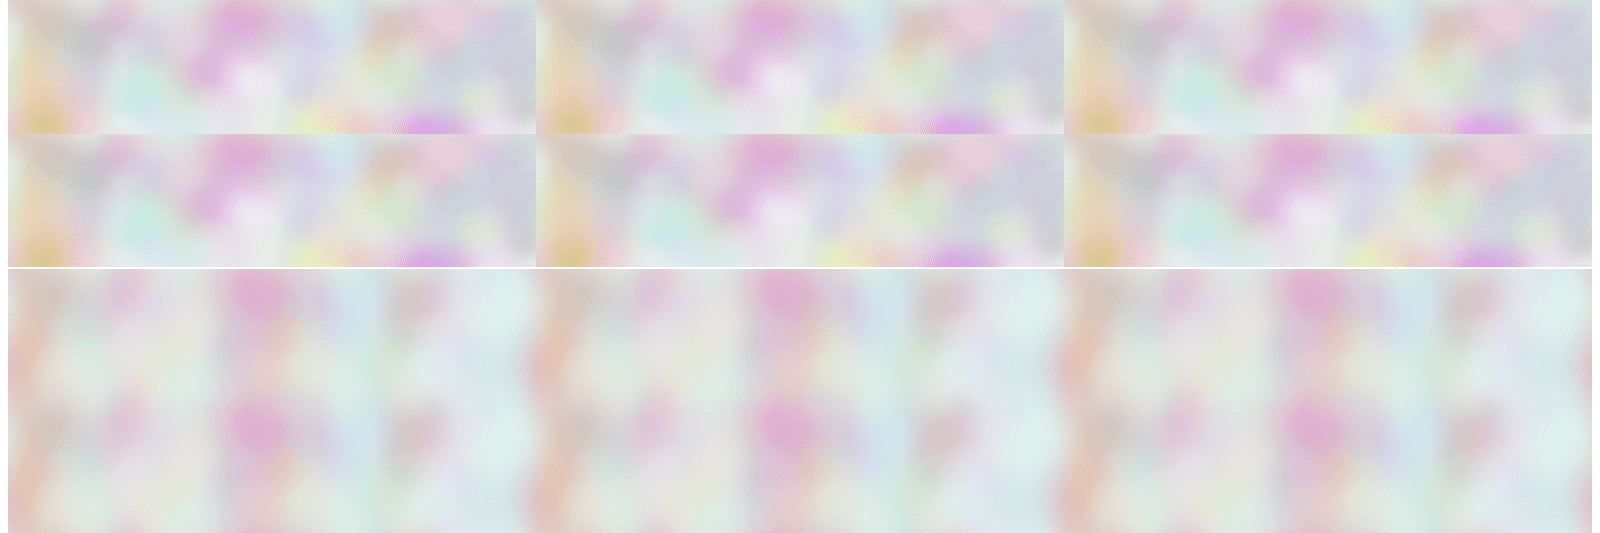 Two long rectangles with blurry color patterns stacked one on top of the other. The top rectangle is split into six smaller rectangles, carrying the same pattern. The bottom rectangle is a single pattern.